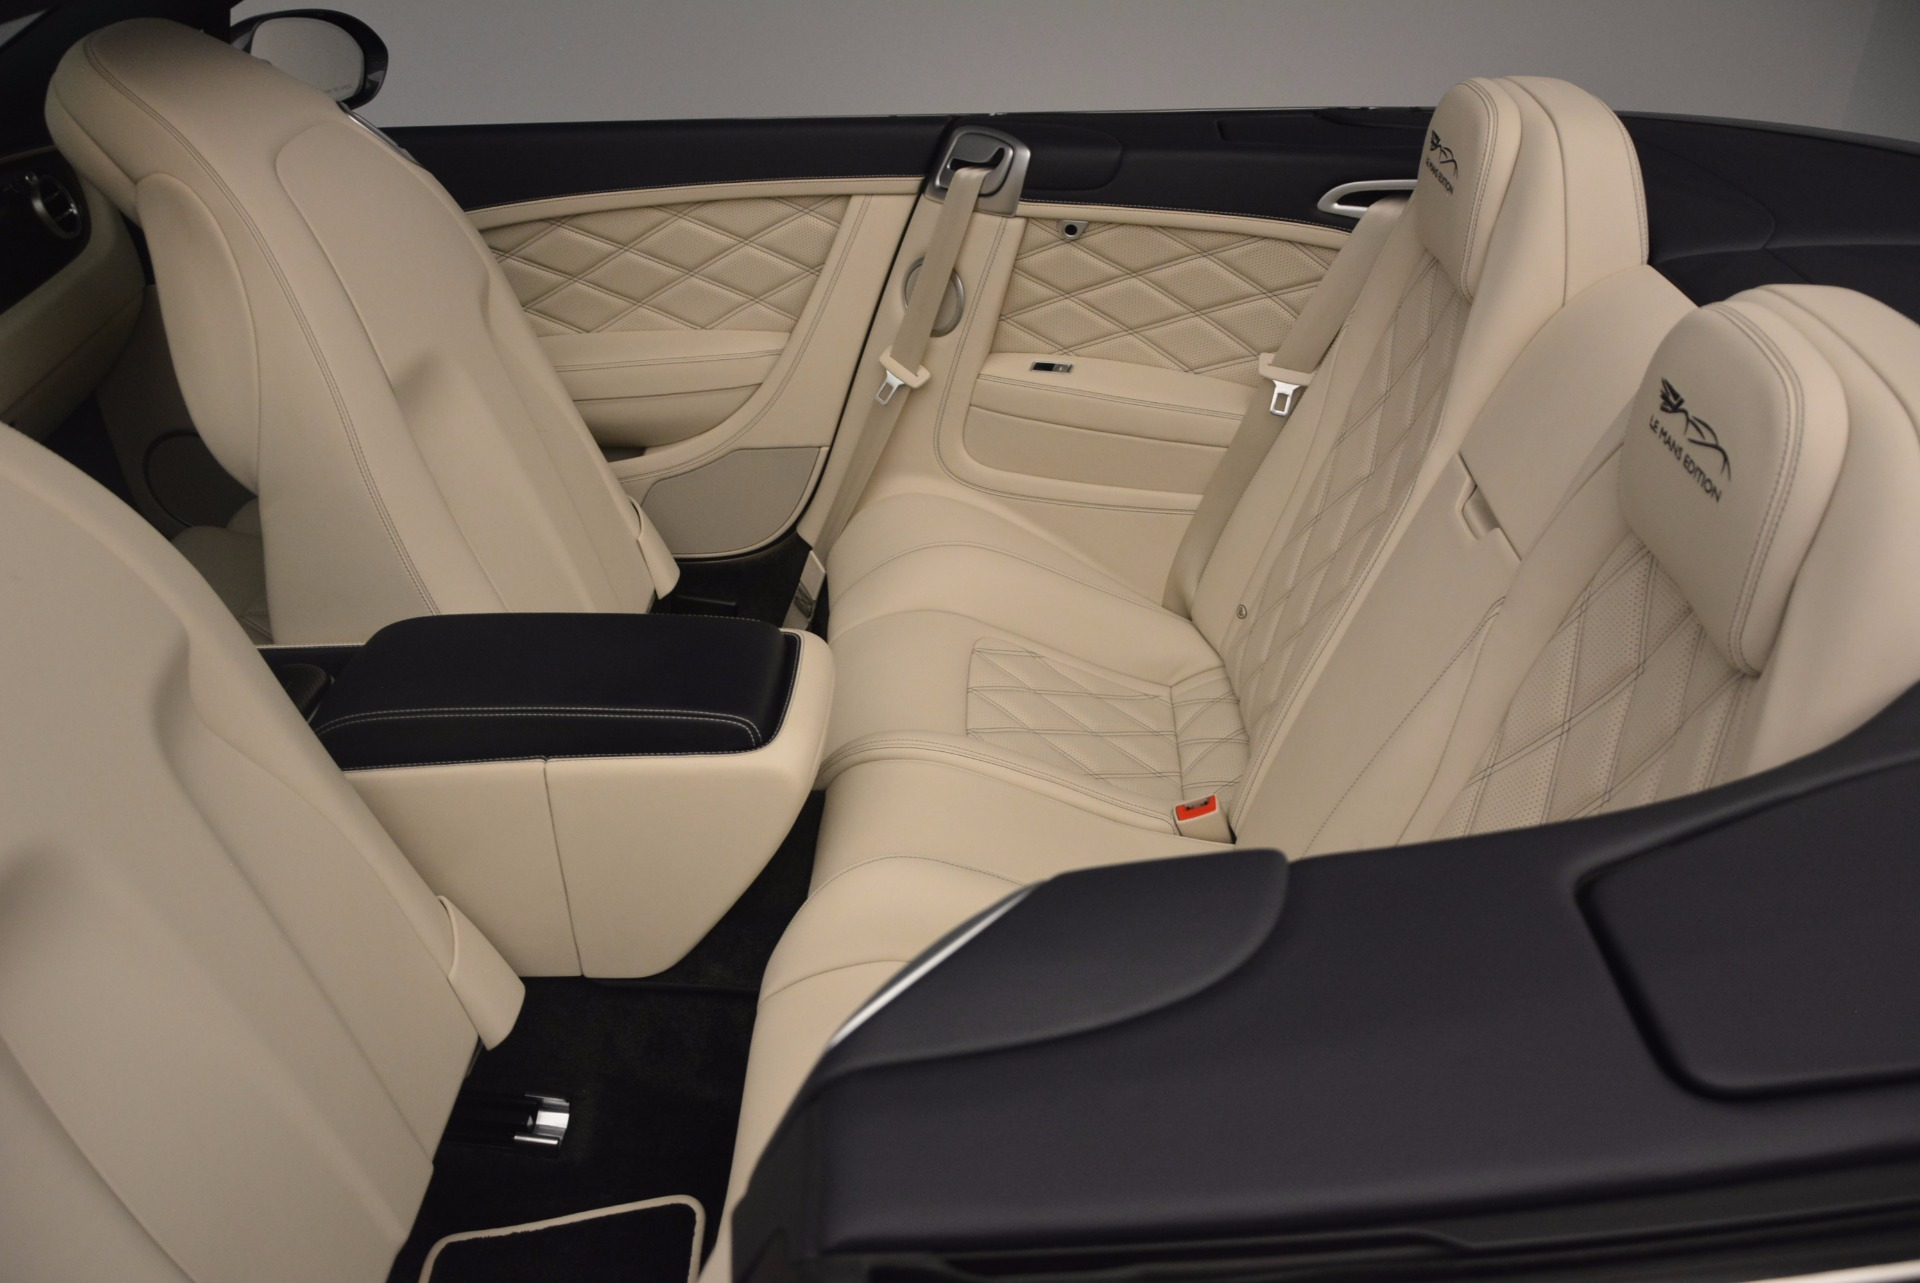 Used 2013 Bentley Continental GT V8 Le Mans Edition, 1 of 48 For Sale In Westport, CT 1288_p46